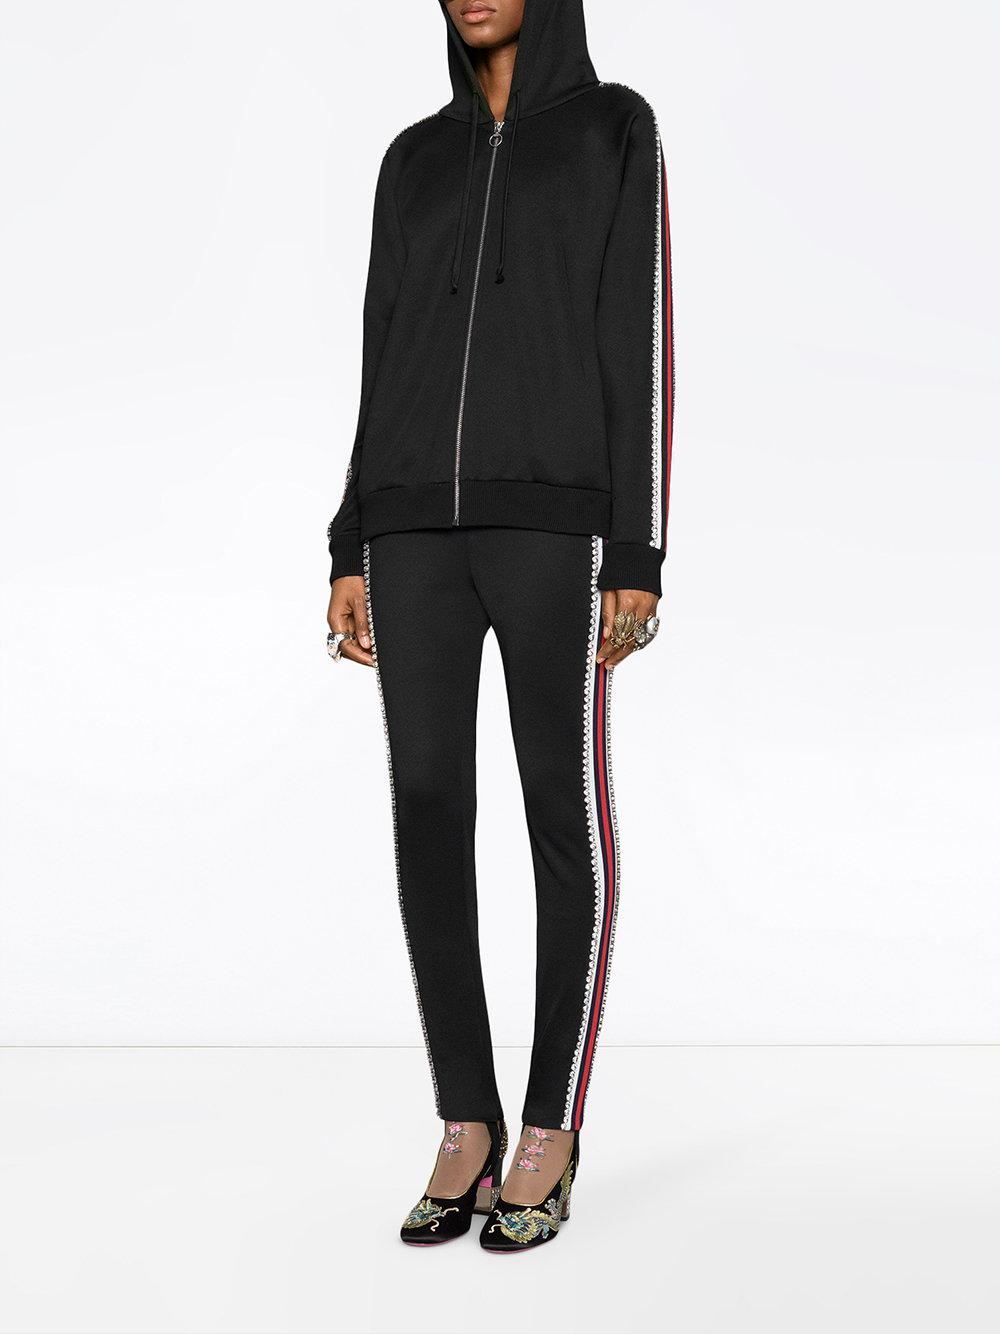 673952eff2f1 Lyst - Gucci Technical Jersey Stirrup Leggings With Crystals in Black